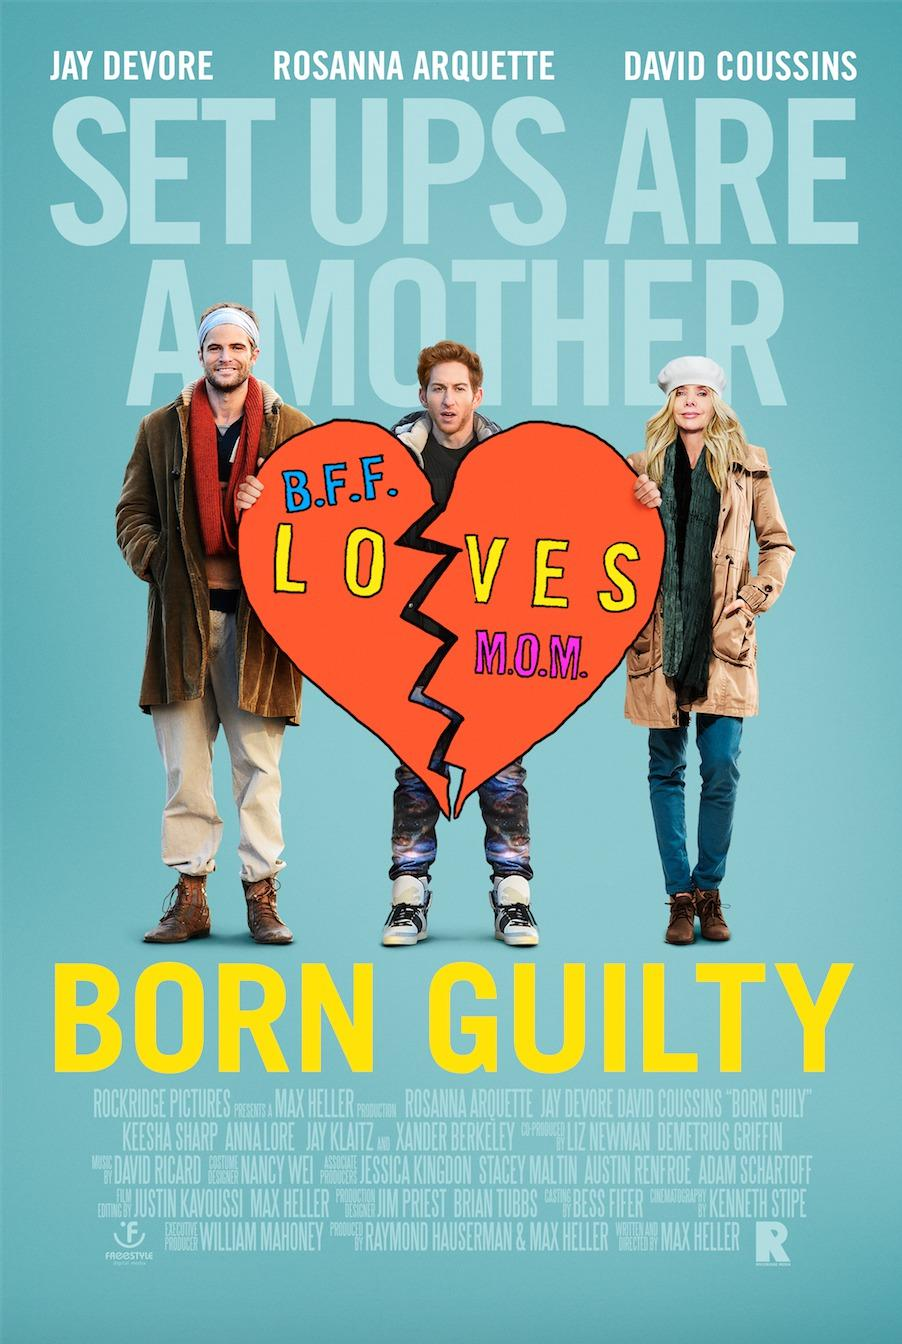 Born Guilty poster art